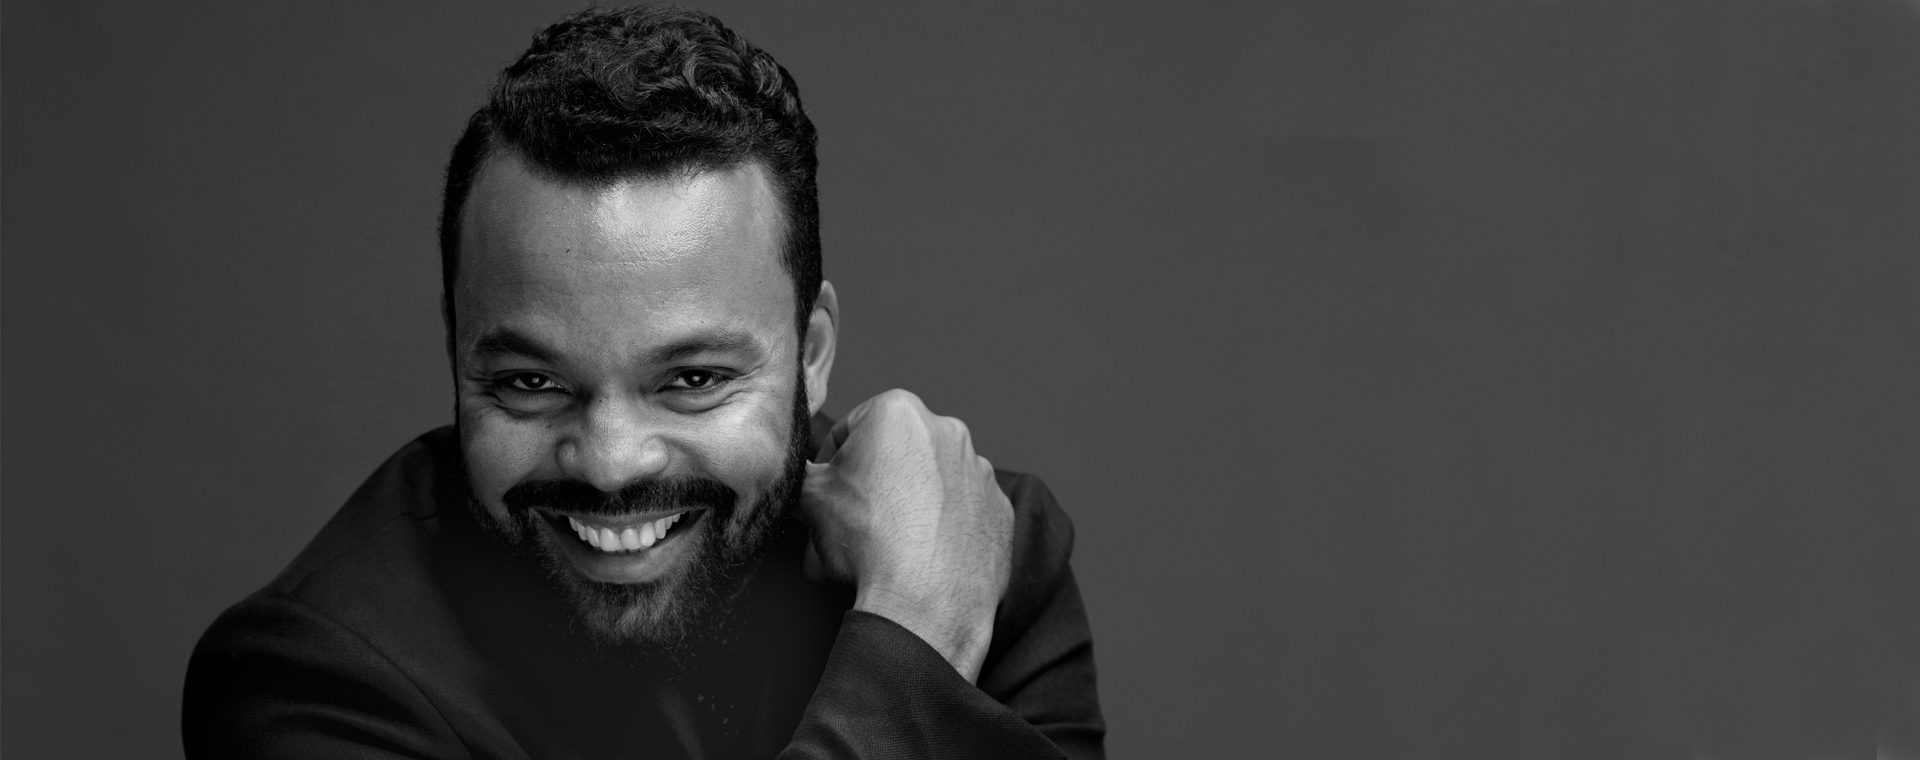 LATEST ISSUE <br><b>Myles Sanko</b></br>